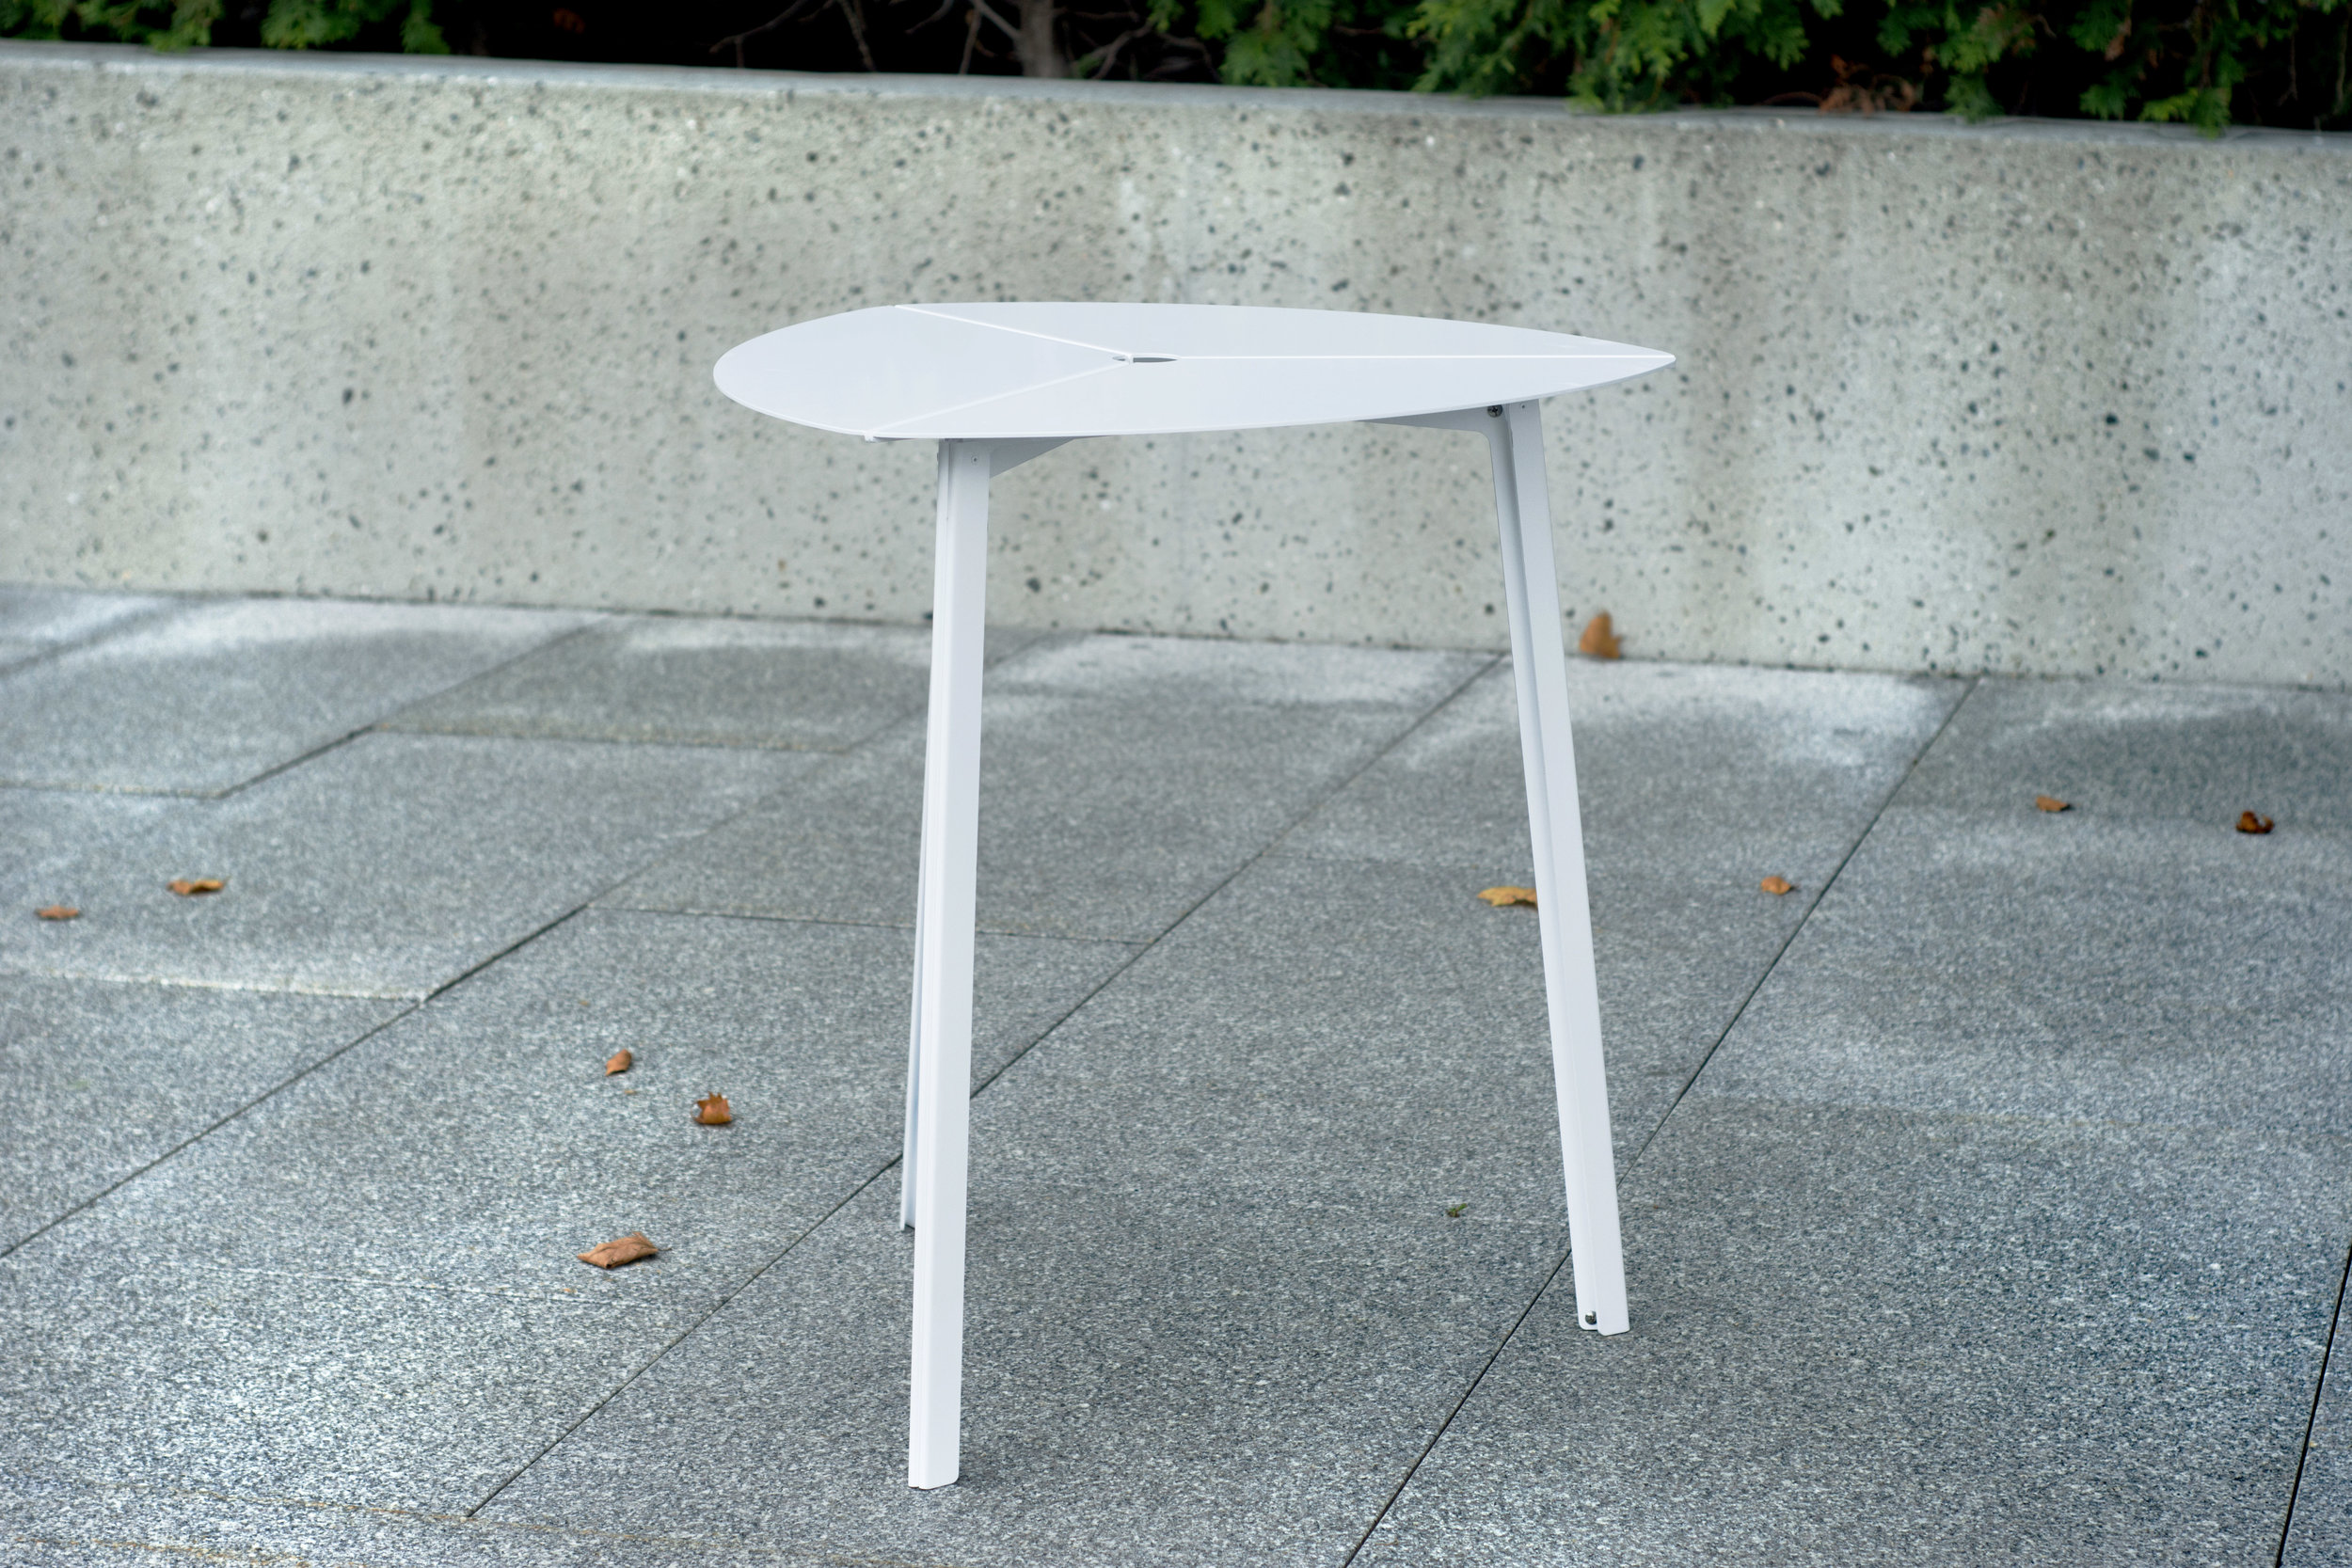 Third Bistro Table - White, contemporary patio furnishing, restaurant seating